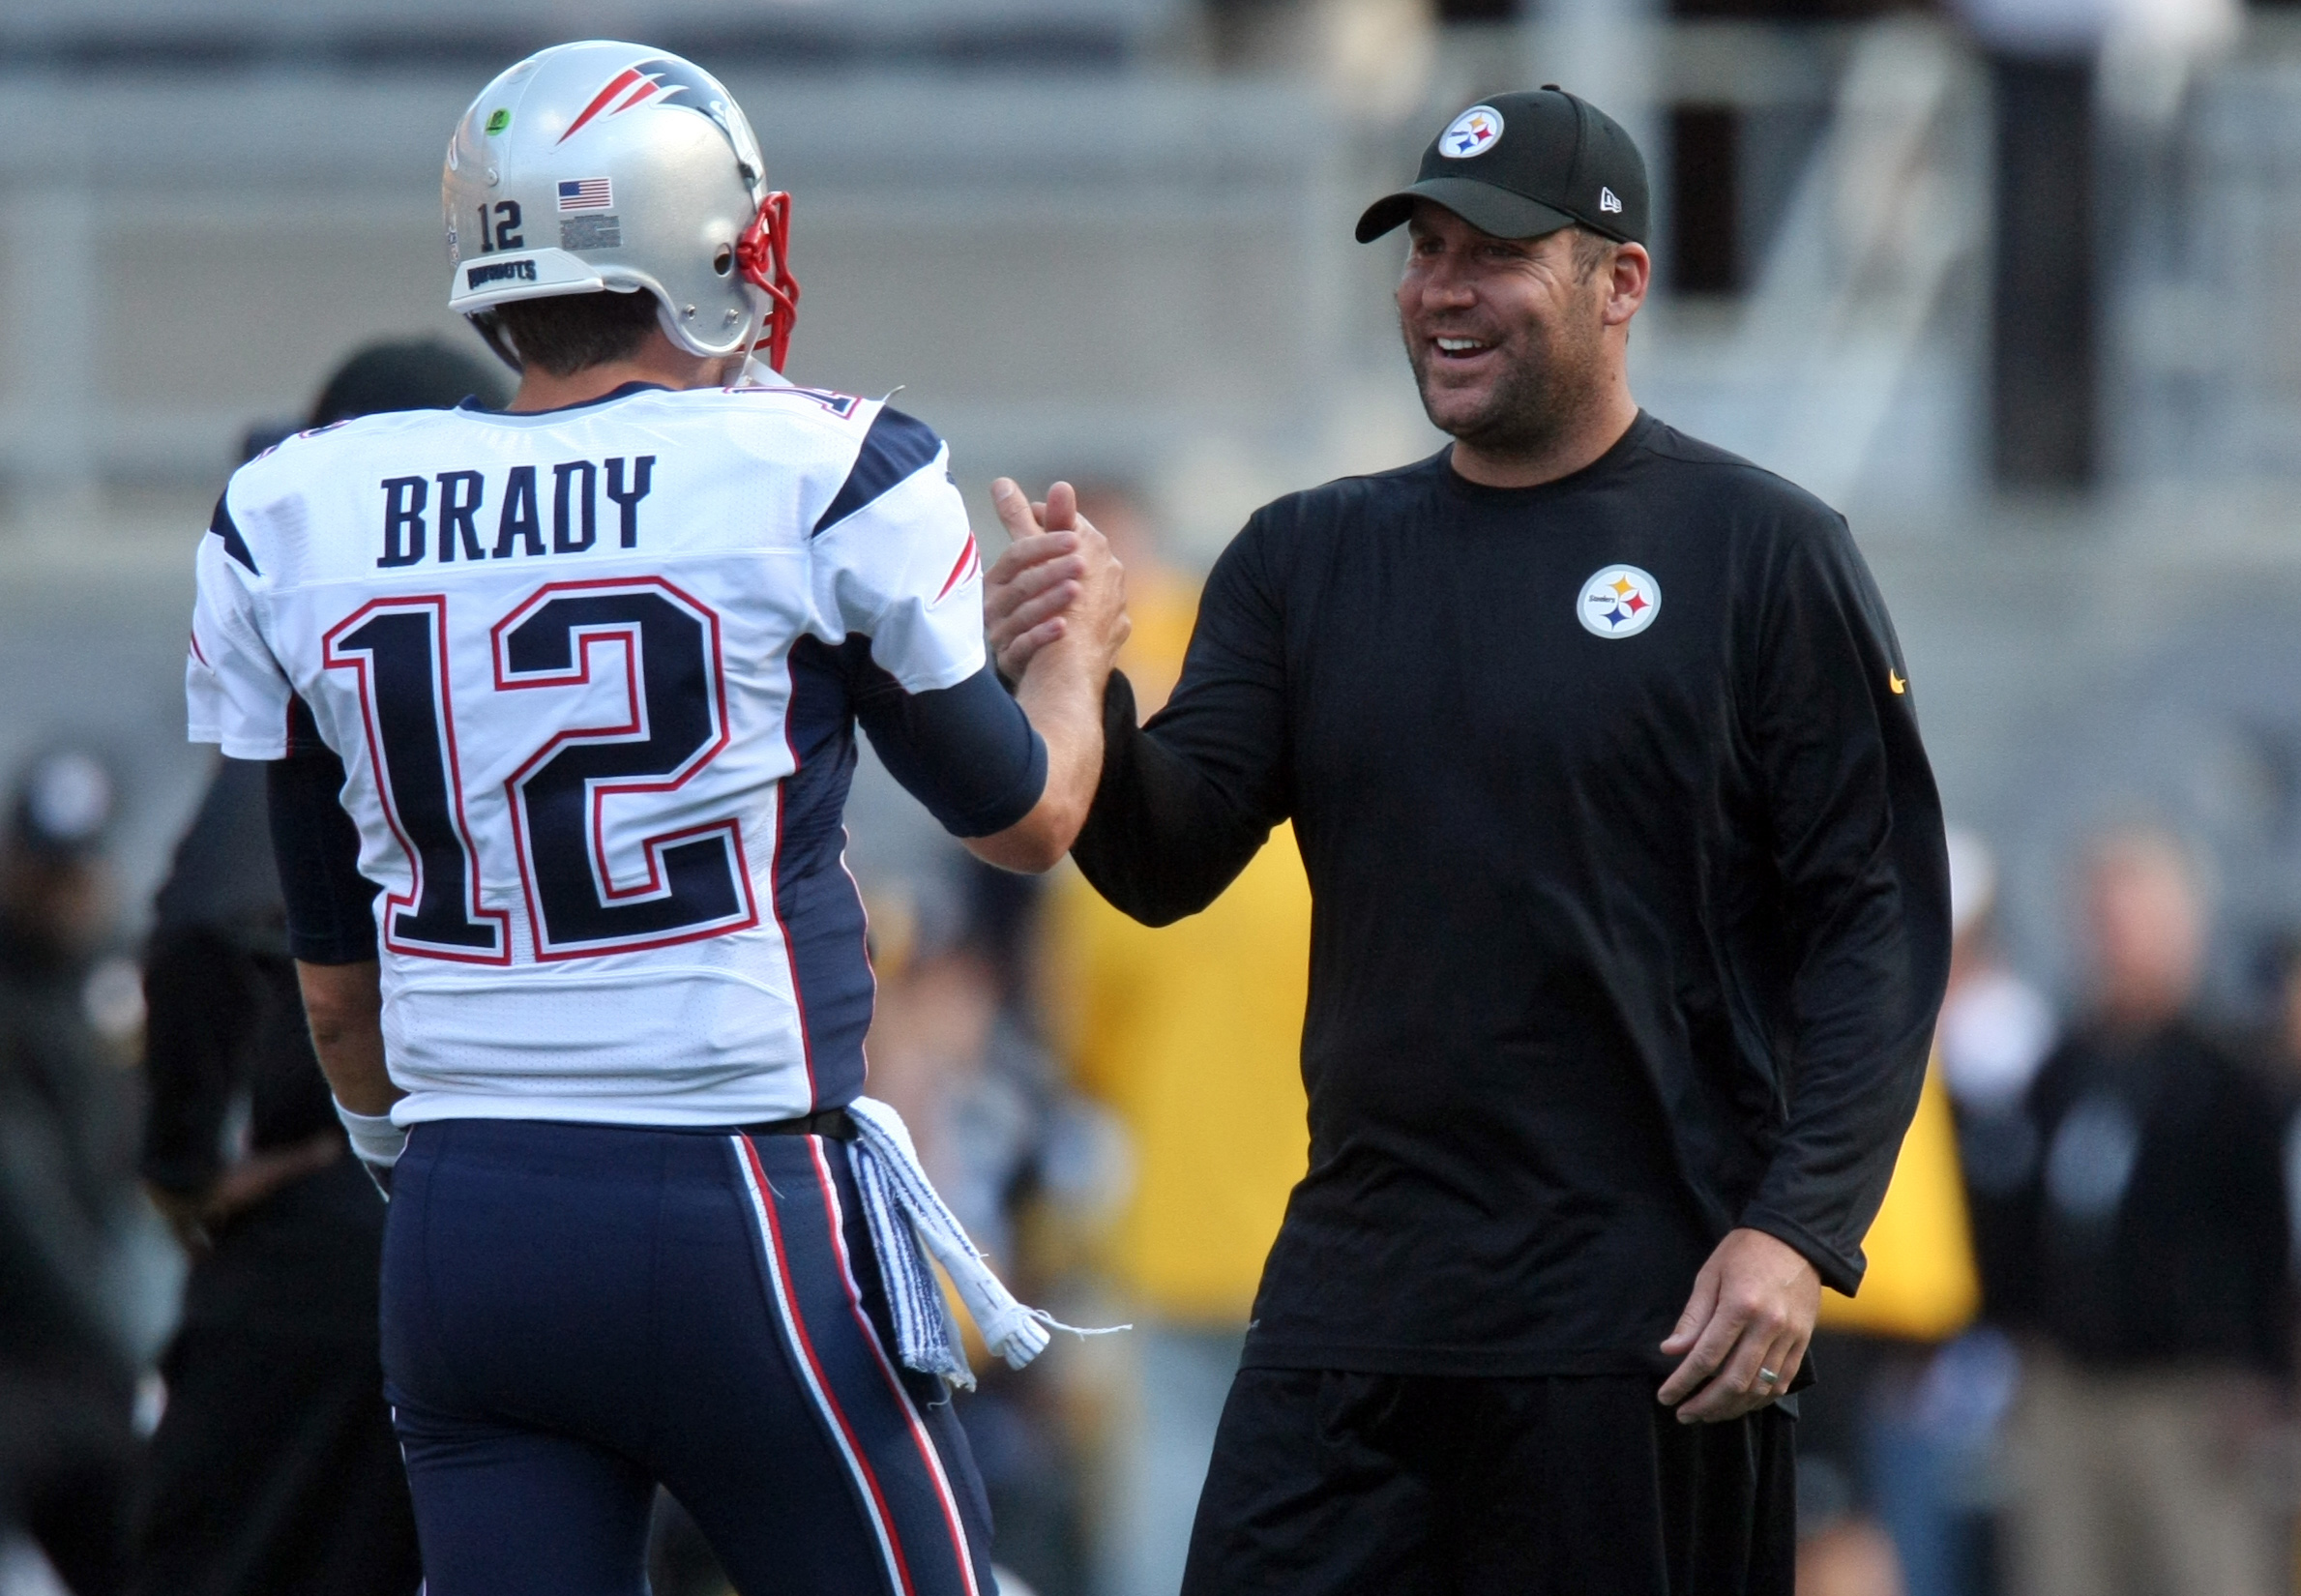 9627885-nfl-new-england-patriots-at-pittsburgh-steelers